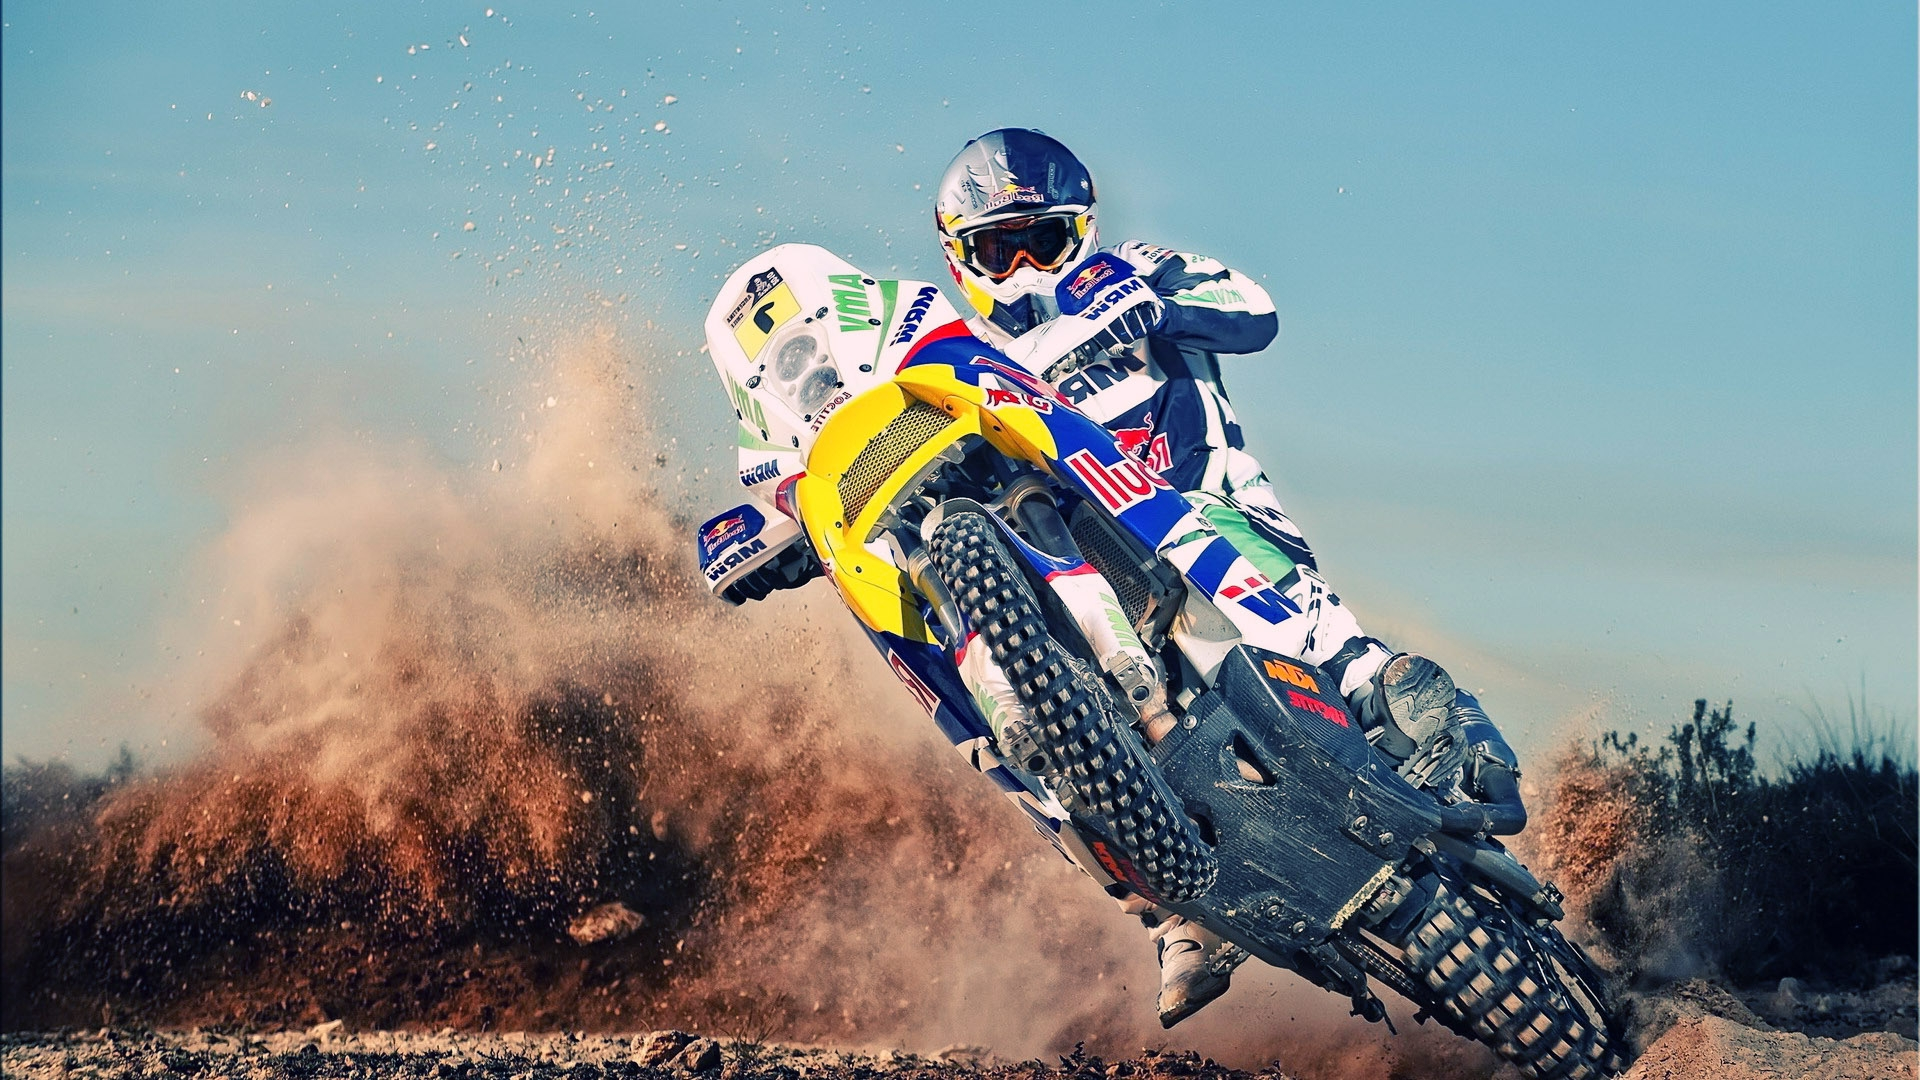 Motocross Hd Wallpapers Widescreen Dirt Bike Wallpaper Hd Pixelstalk Net